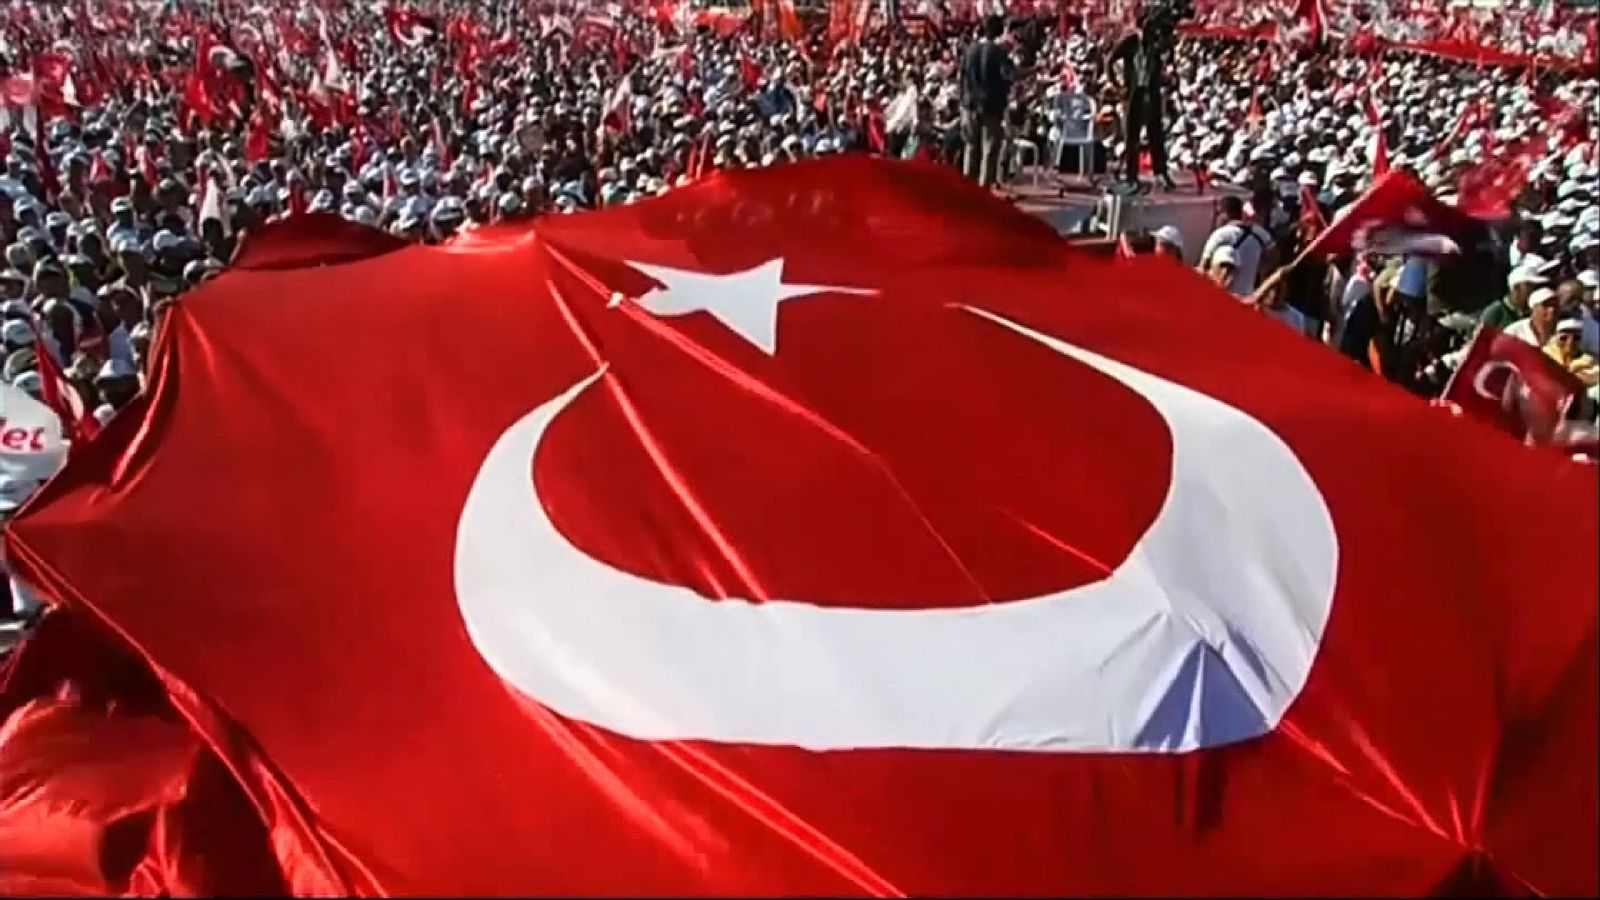 It is one year since Turkish soldiers failed to seize power from their President. What's changed and has Erdogan consolidated power?